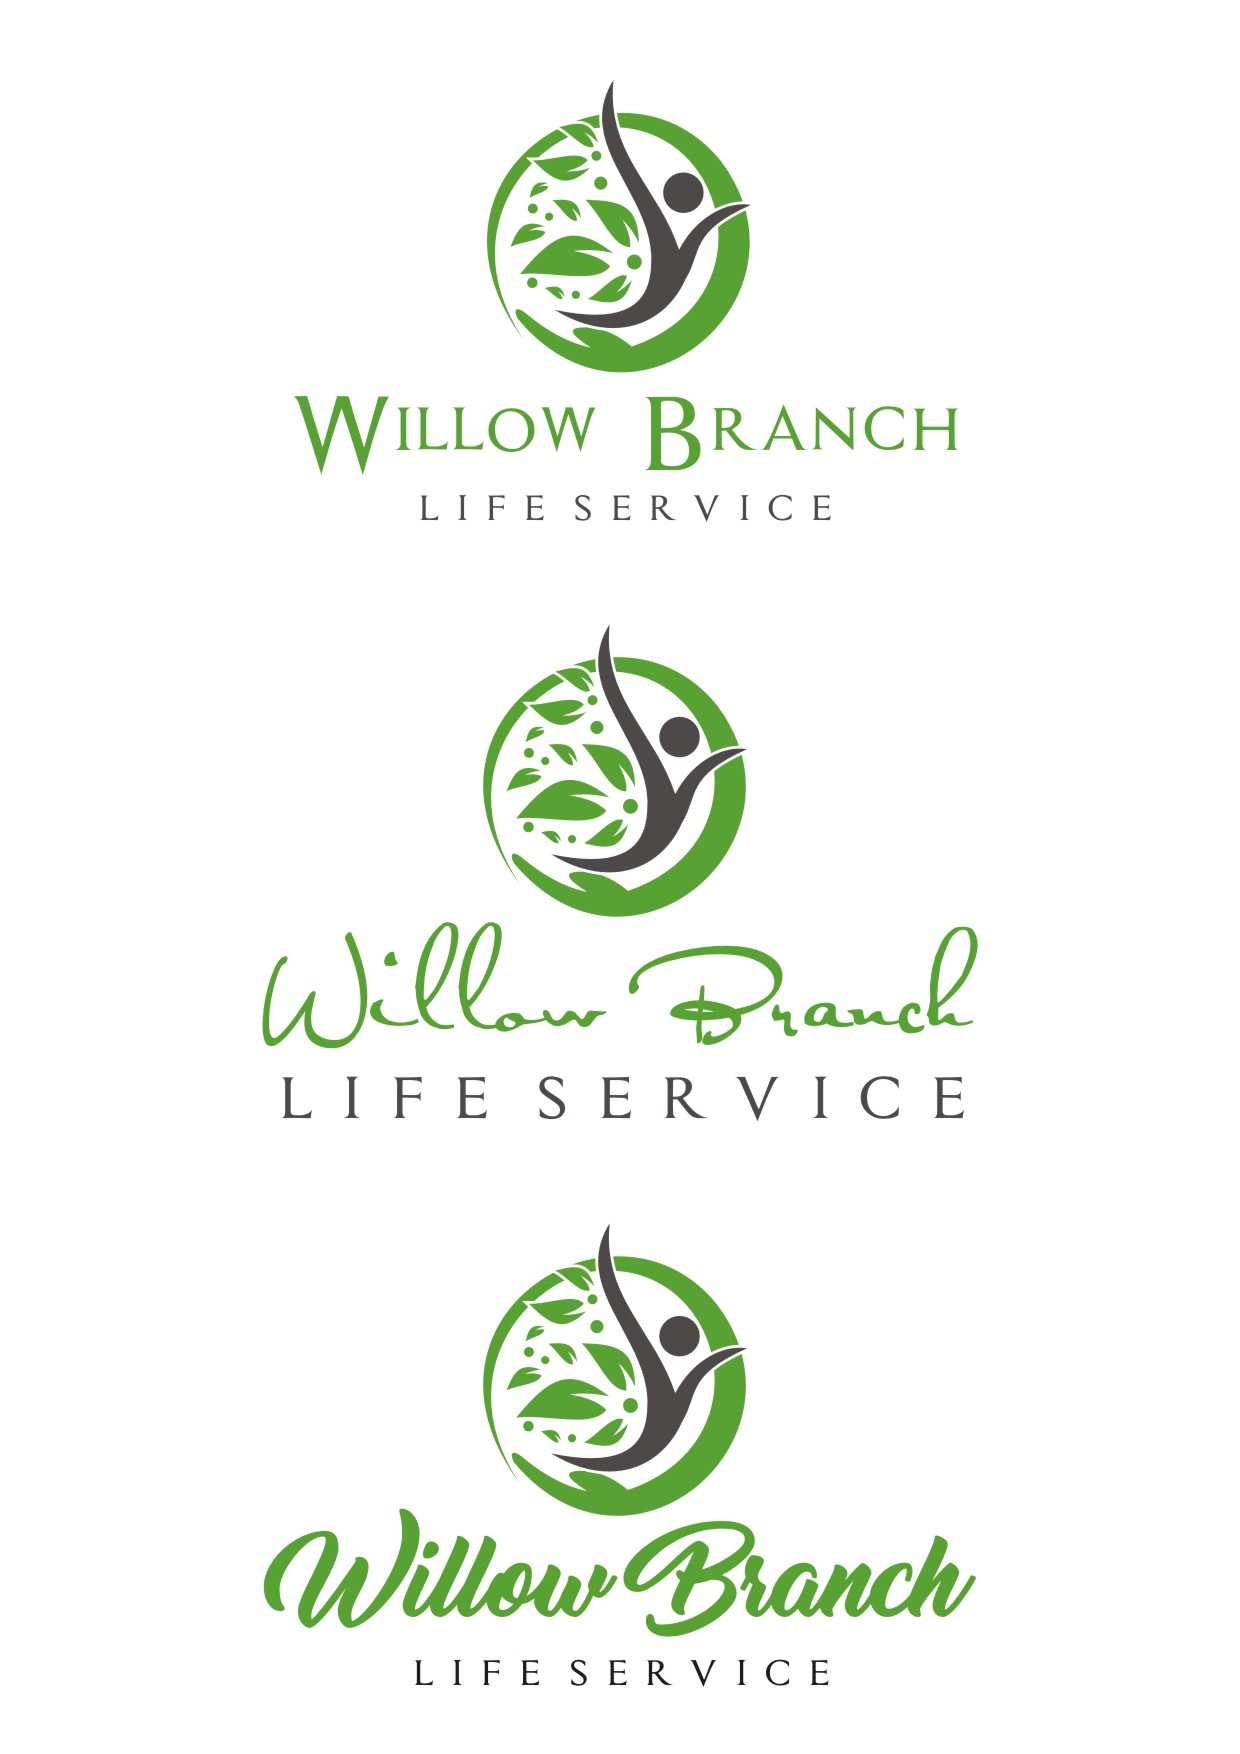 Logo Design by Lynx Graphics - Entry No. 469 in the Logo Design Contest Artistic Logo Design for Willow Branch Life Service.